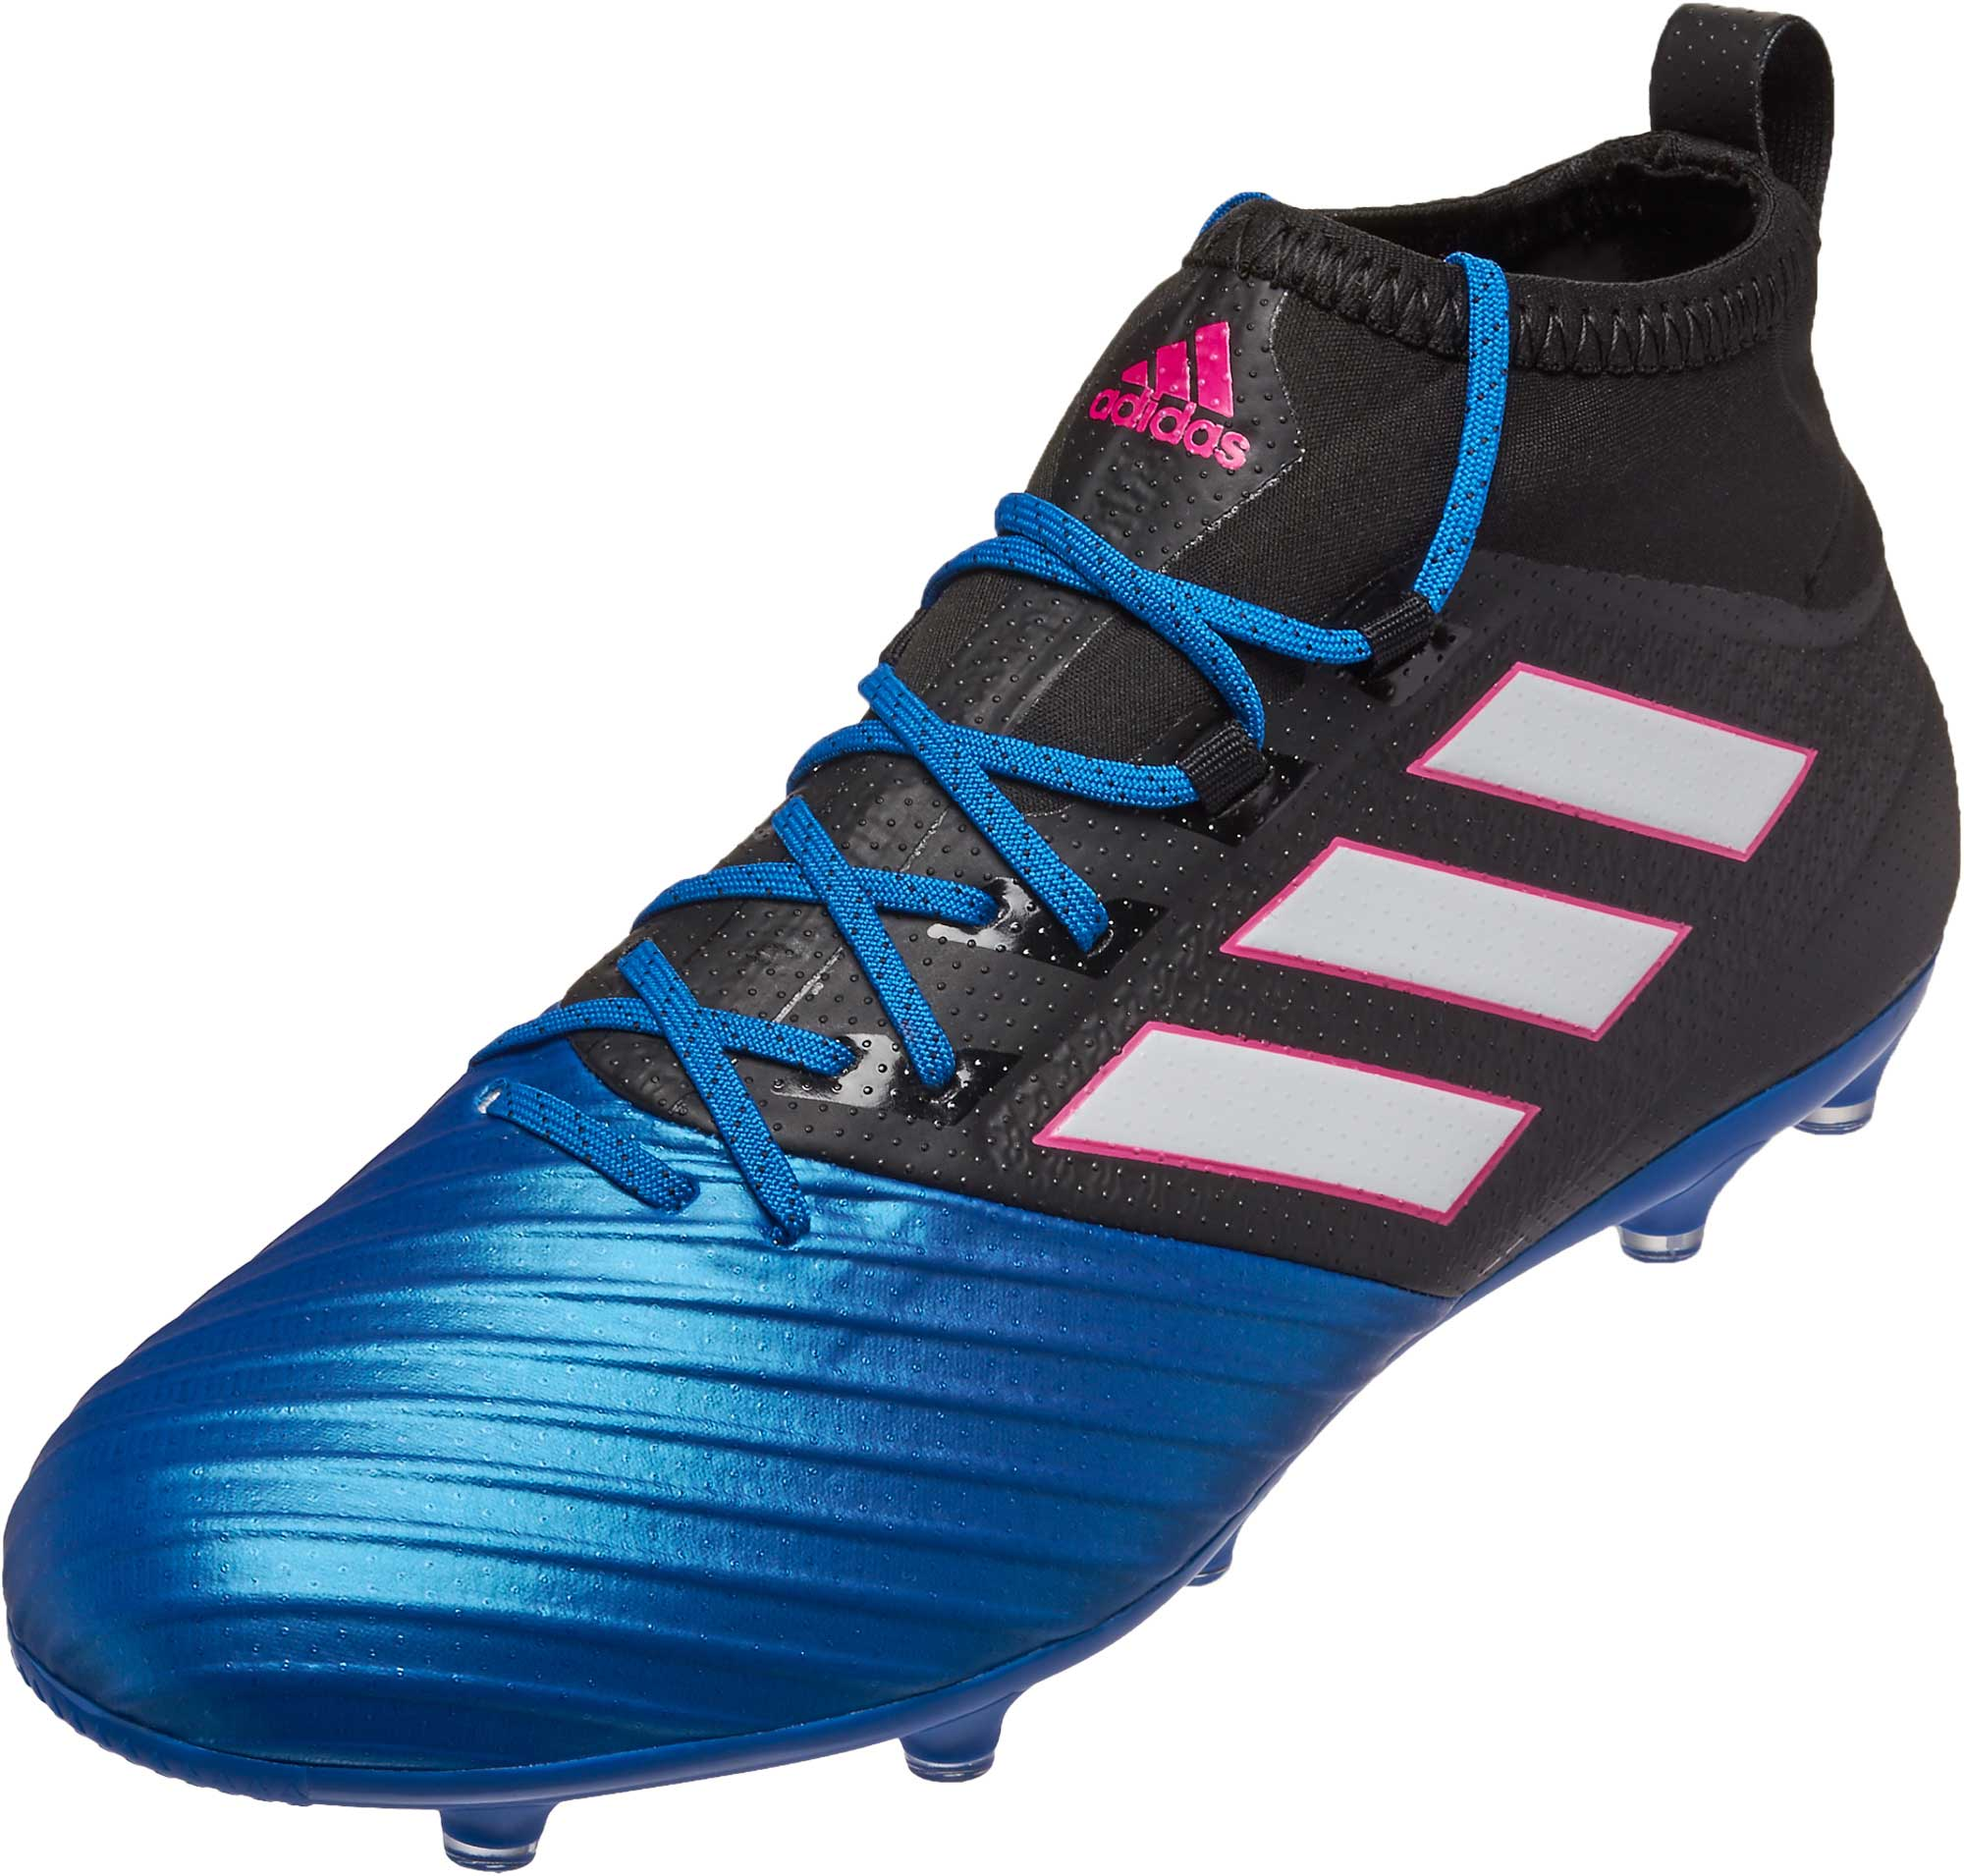 adidas ACE 17.2 Primemesh FG Soccer Cleats - Black & Blue ...